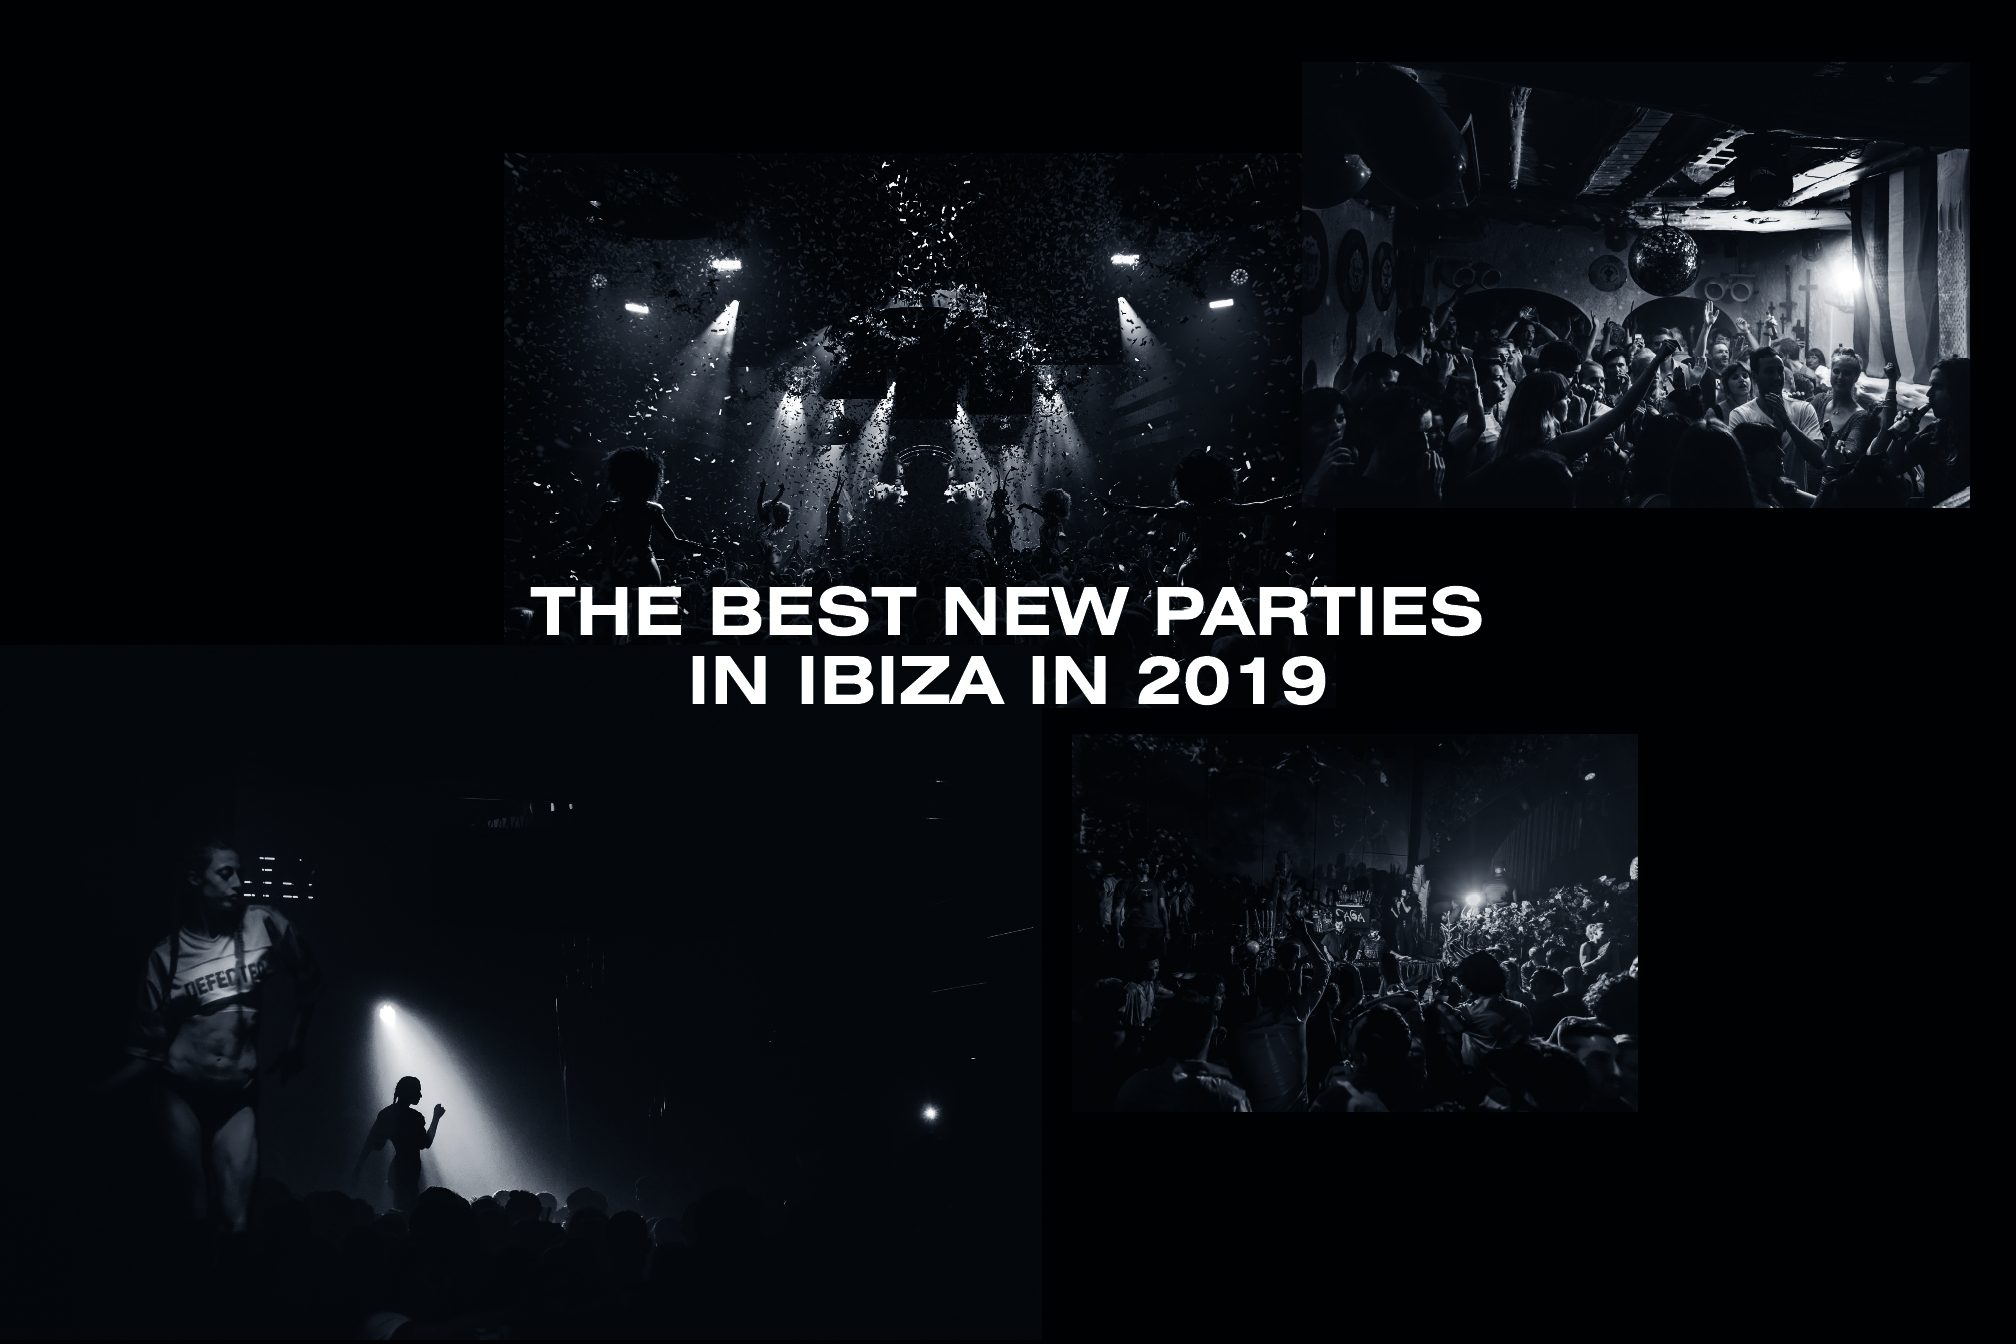 The 10 best new parties in Ibiza in 2019 - Lists - Mixmag